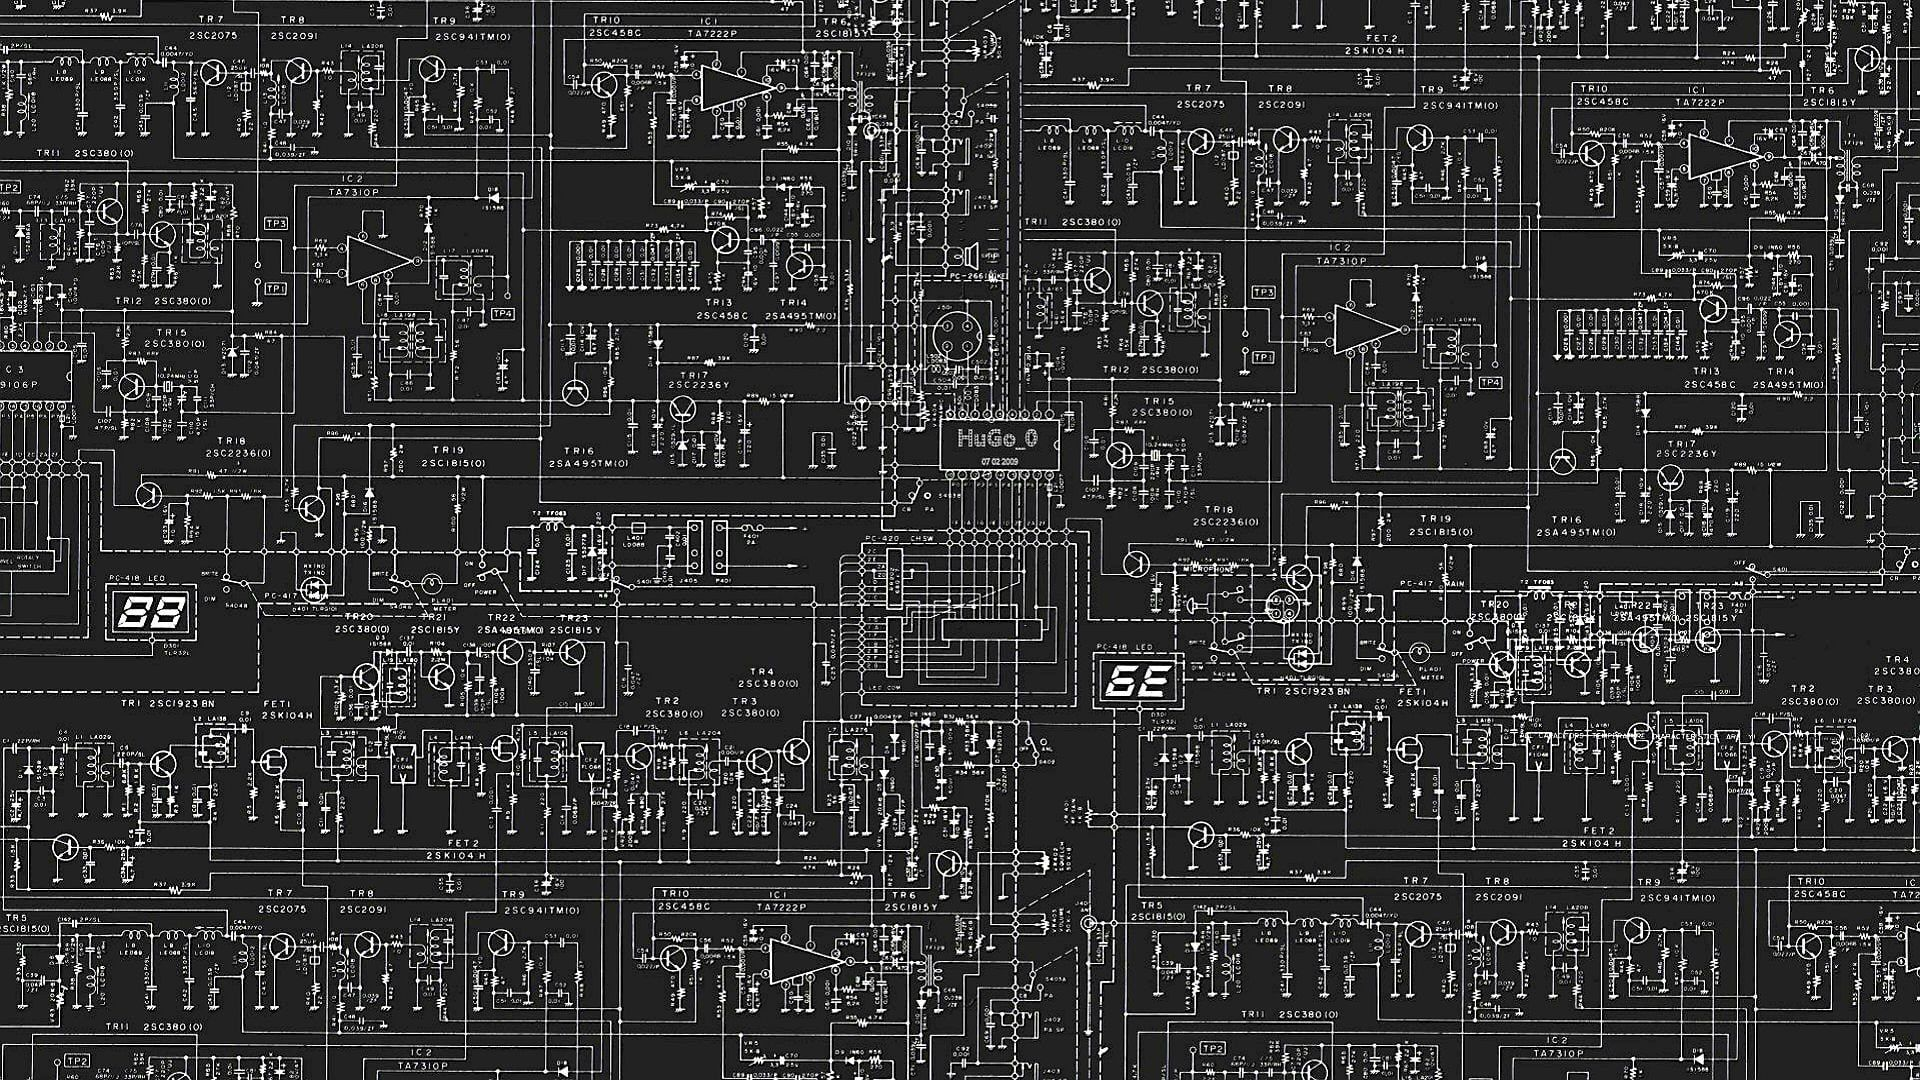 Technics Internet Design Business Cloud Data Information Graphic Icon Collection Idea Ele Electronics Wallpaper Computer Engineering Science Images